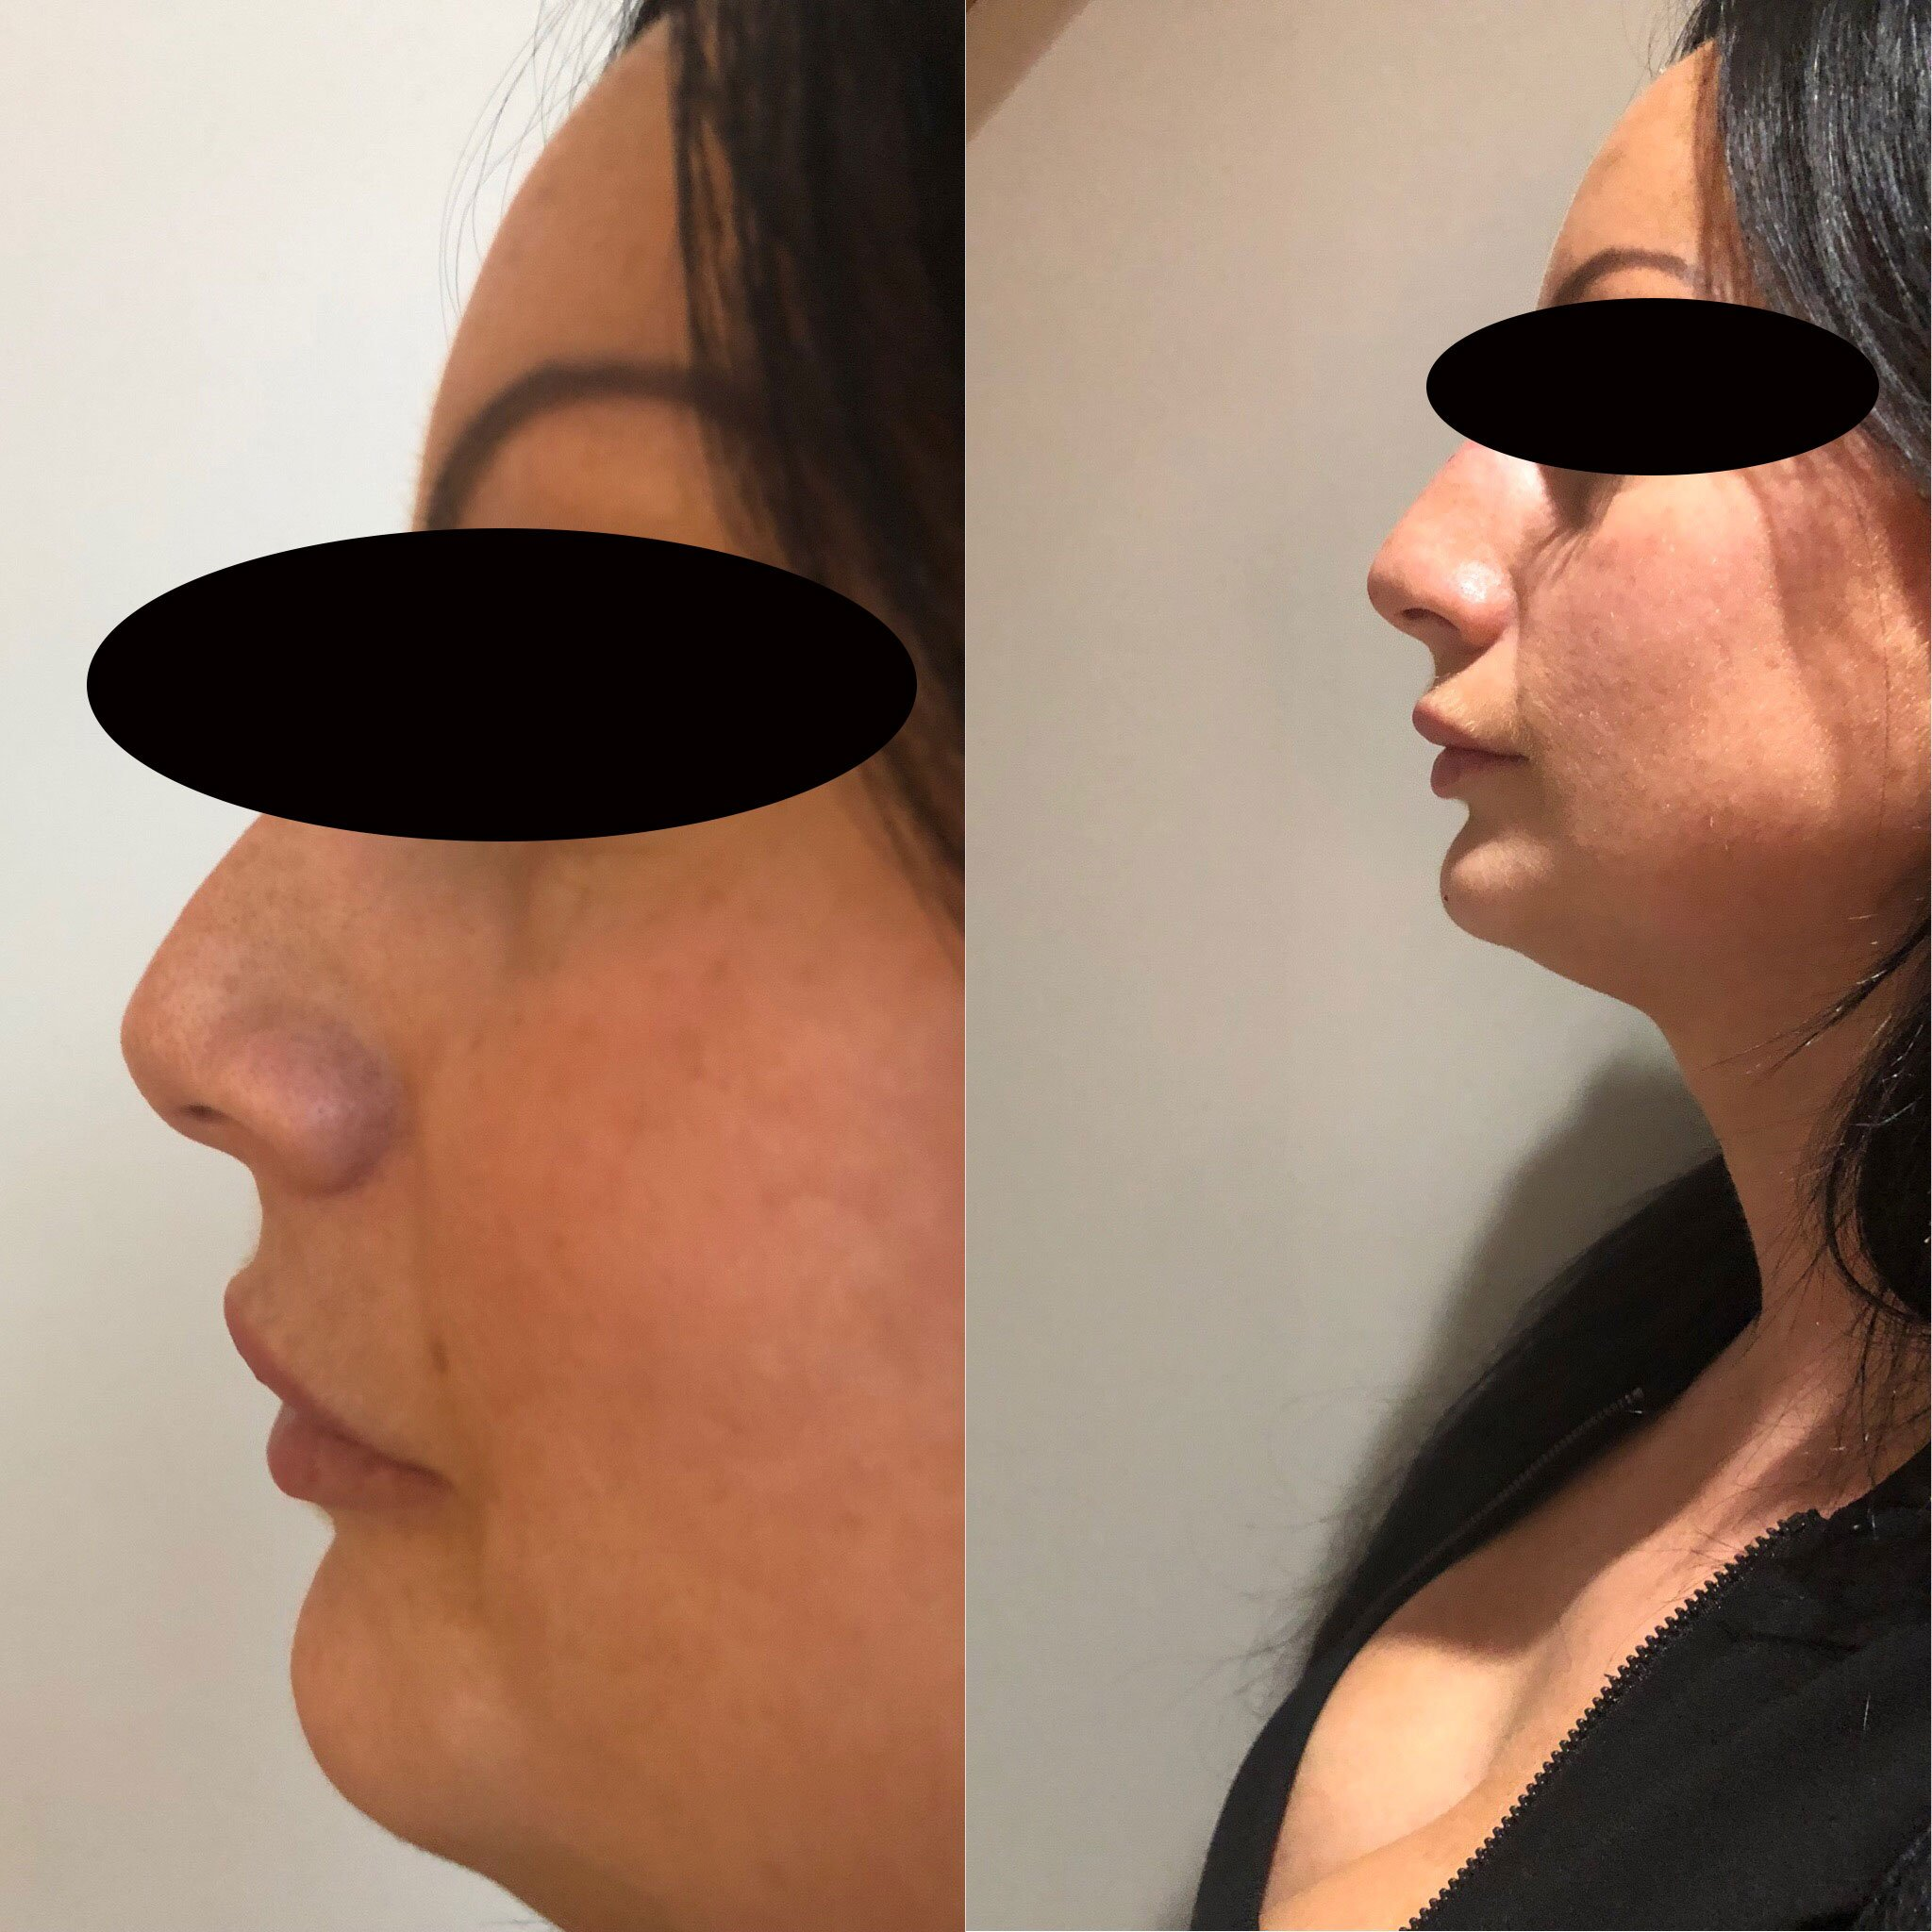 Before & After Photos - Dermo Aesthetic Surgery